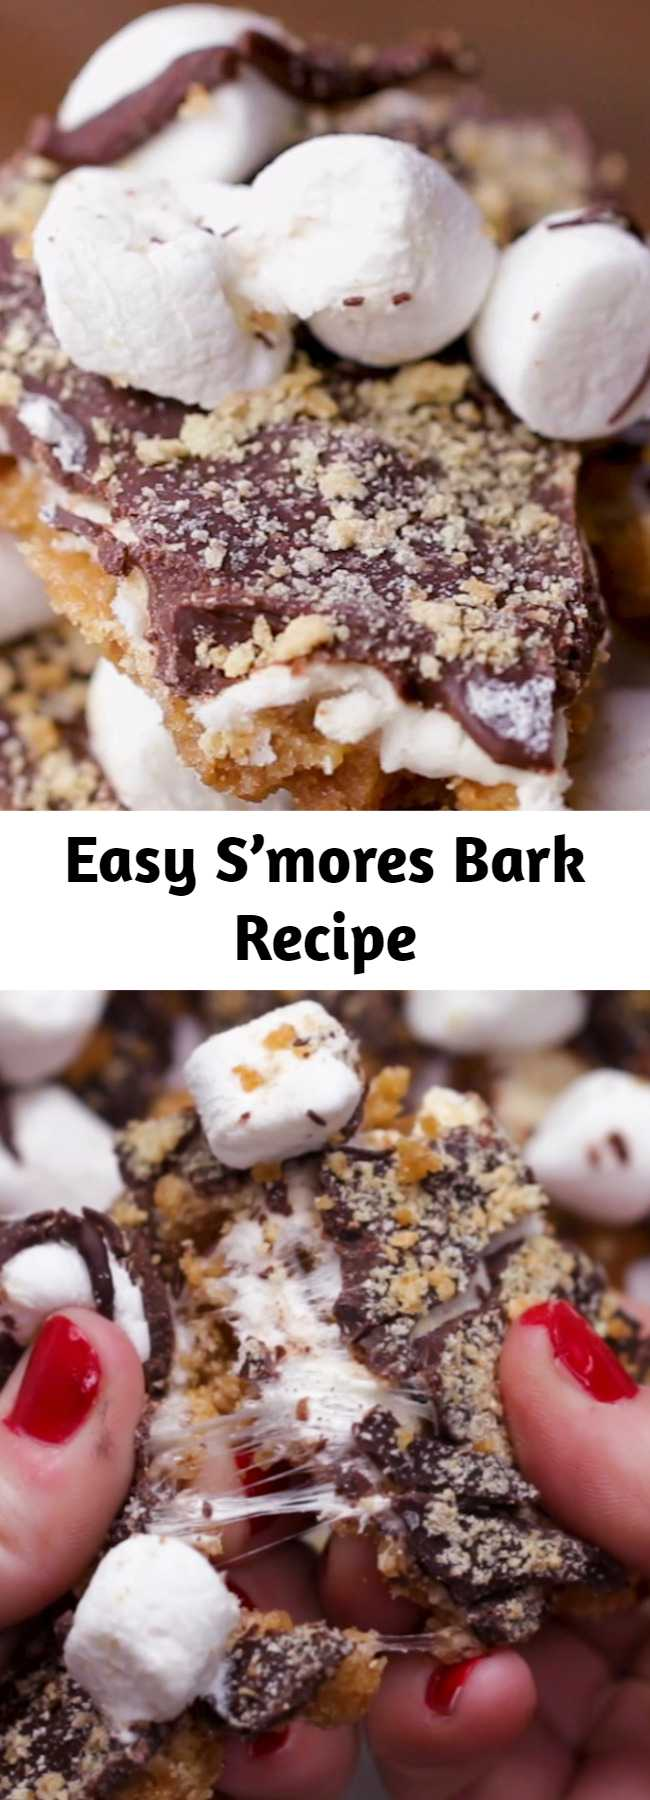 Easy S'mores Bark Recipe - This was a huge hit! It's an great gif! You can really personalize it with crushed nuts or drizzled chocolate on top.